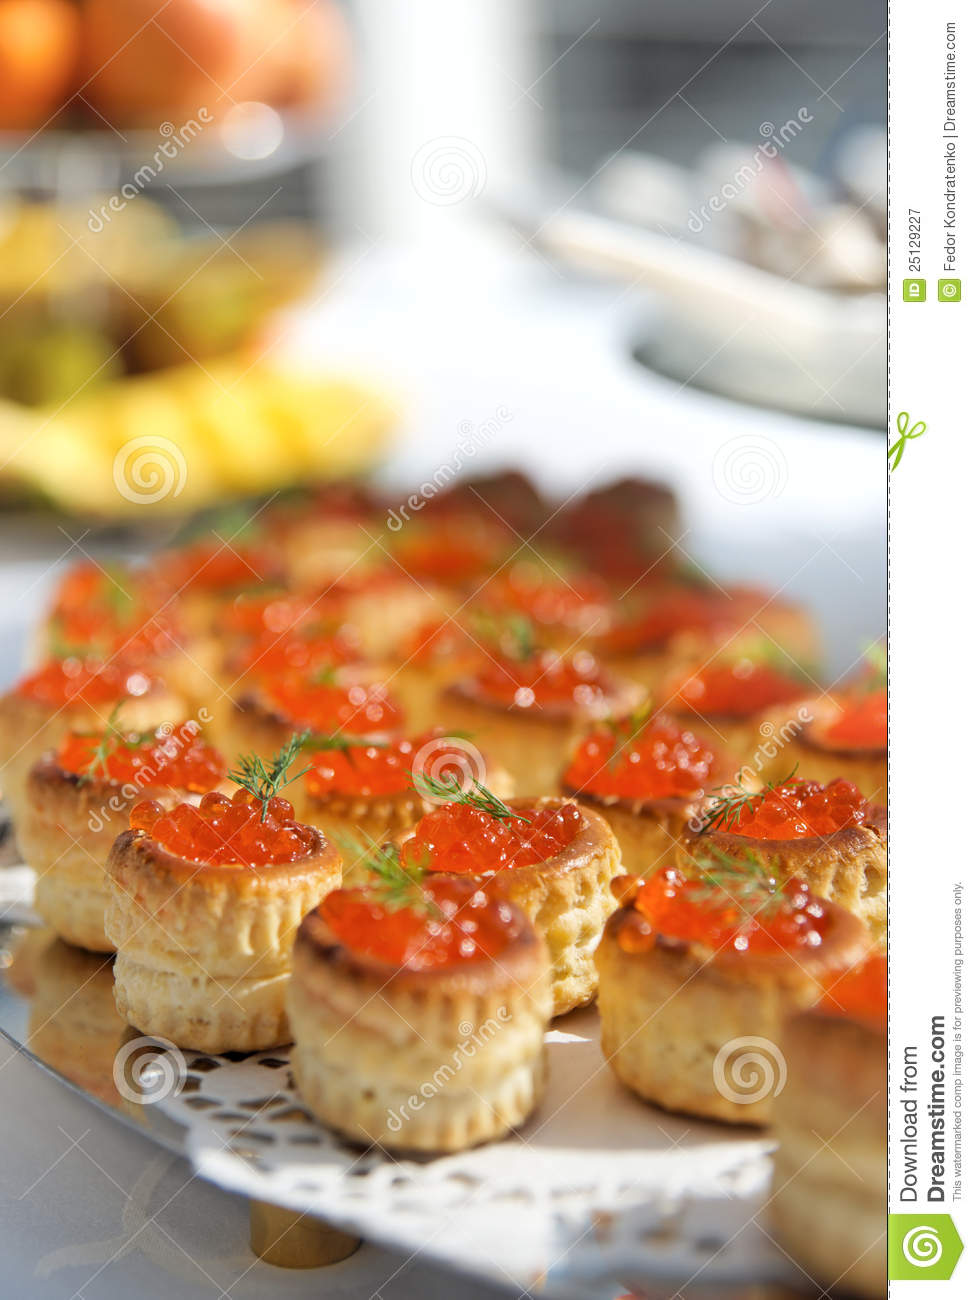 Tartlets with caviar. How to cook tartlets with red caviar 86